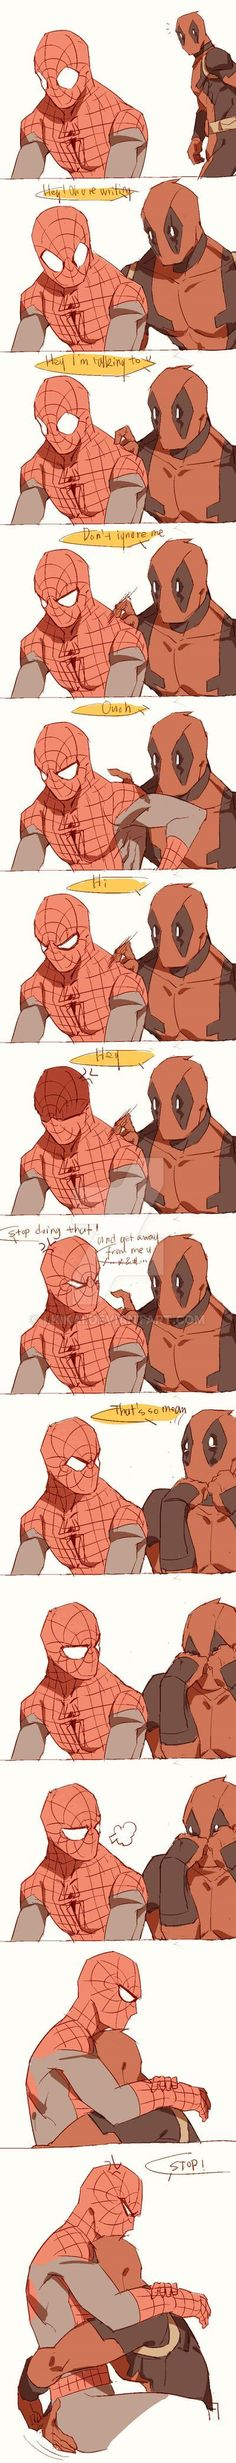 Spideypool212 by LKiKAi.deviantart.com on @DeviantArt - Visit to grab an amazing super hero shirt now on sale!